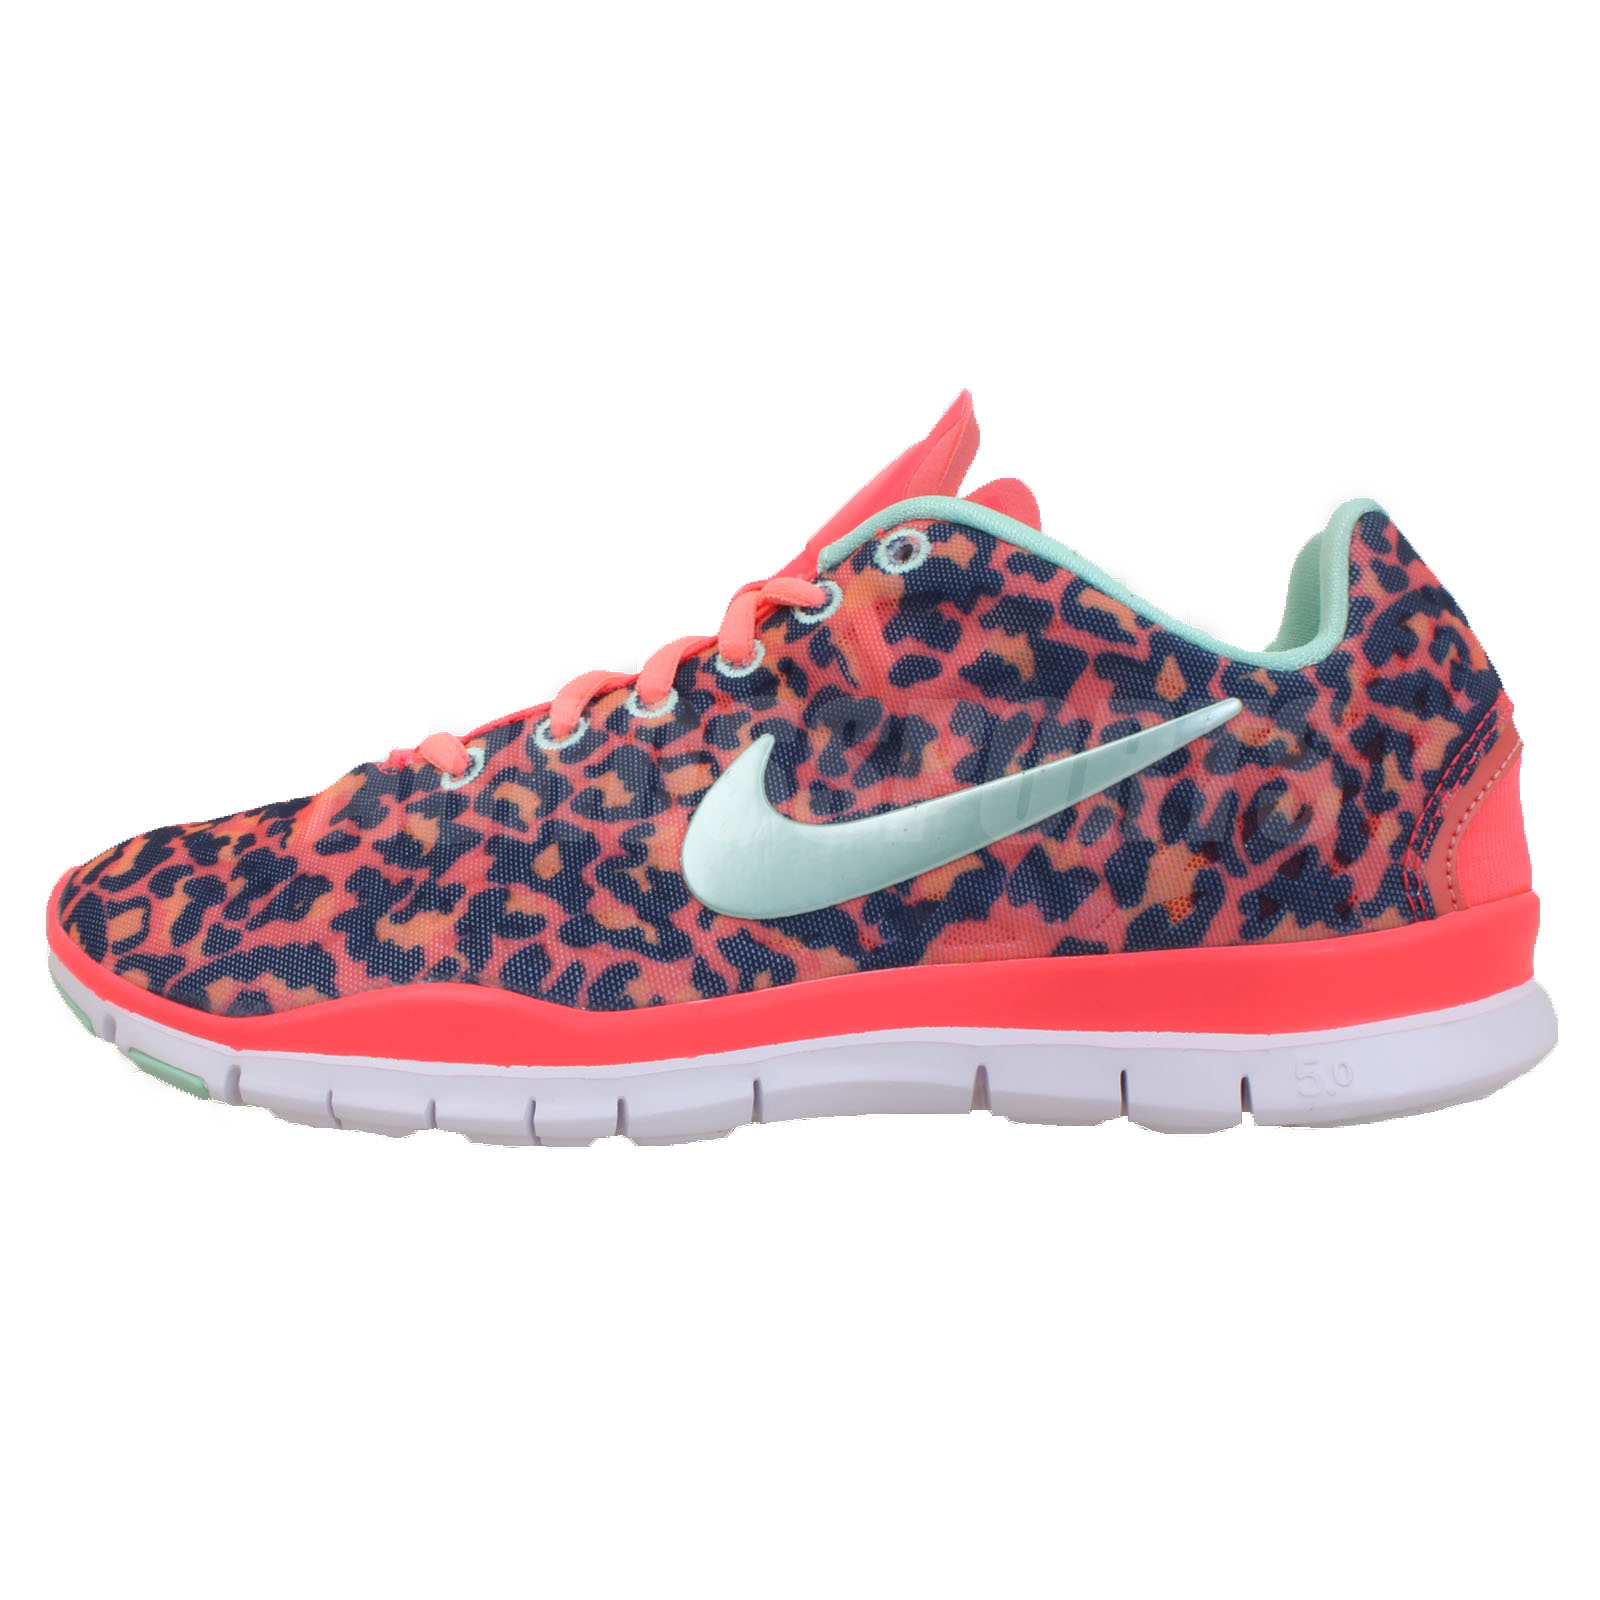 Nike Women's Racer Leopard Print Running Crops, Radinat Emerald, S. by NIKE. $ $ 49 wear and features an allover leopard print with solid edging for a cool Nike Wmns Blazer Mid Print Leopard - Dark Gold () by NIKE. Zappos Shoes & Clothing.